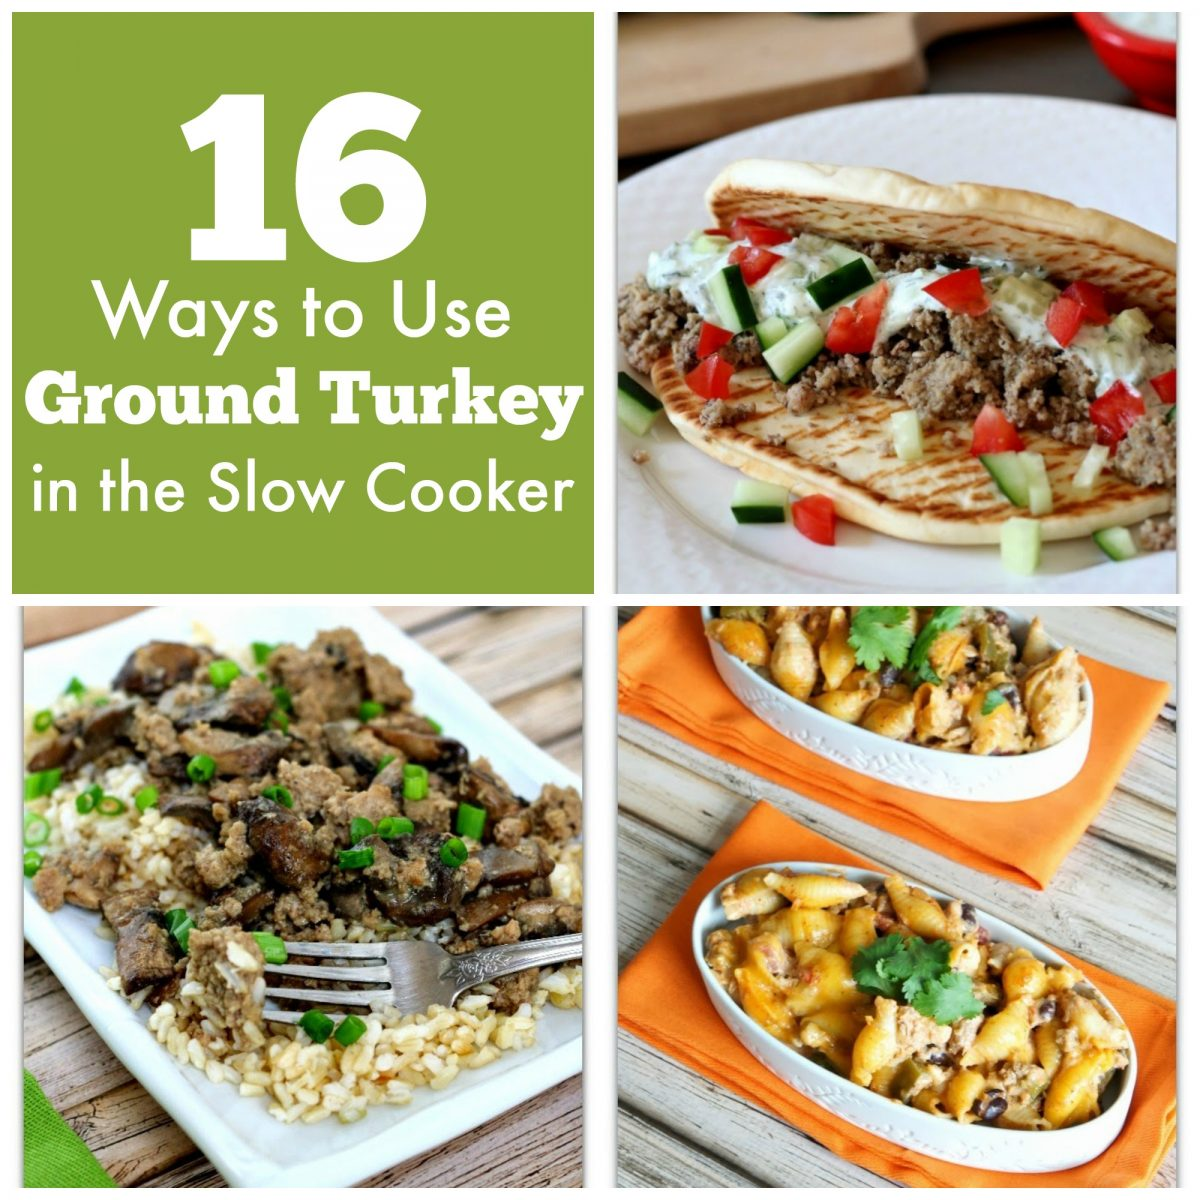 16 recipes and ideas of ways to use ground turkey in the crockpot